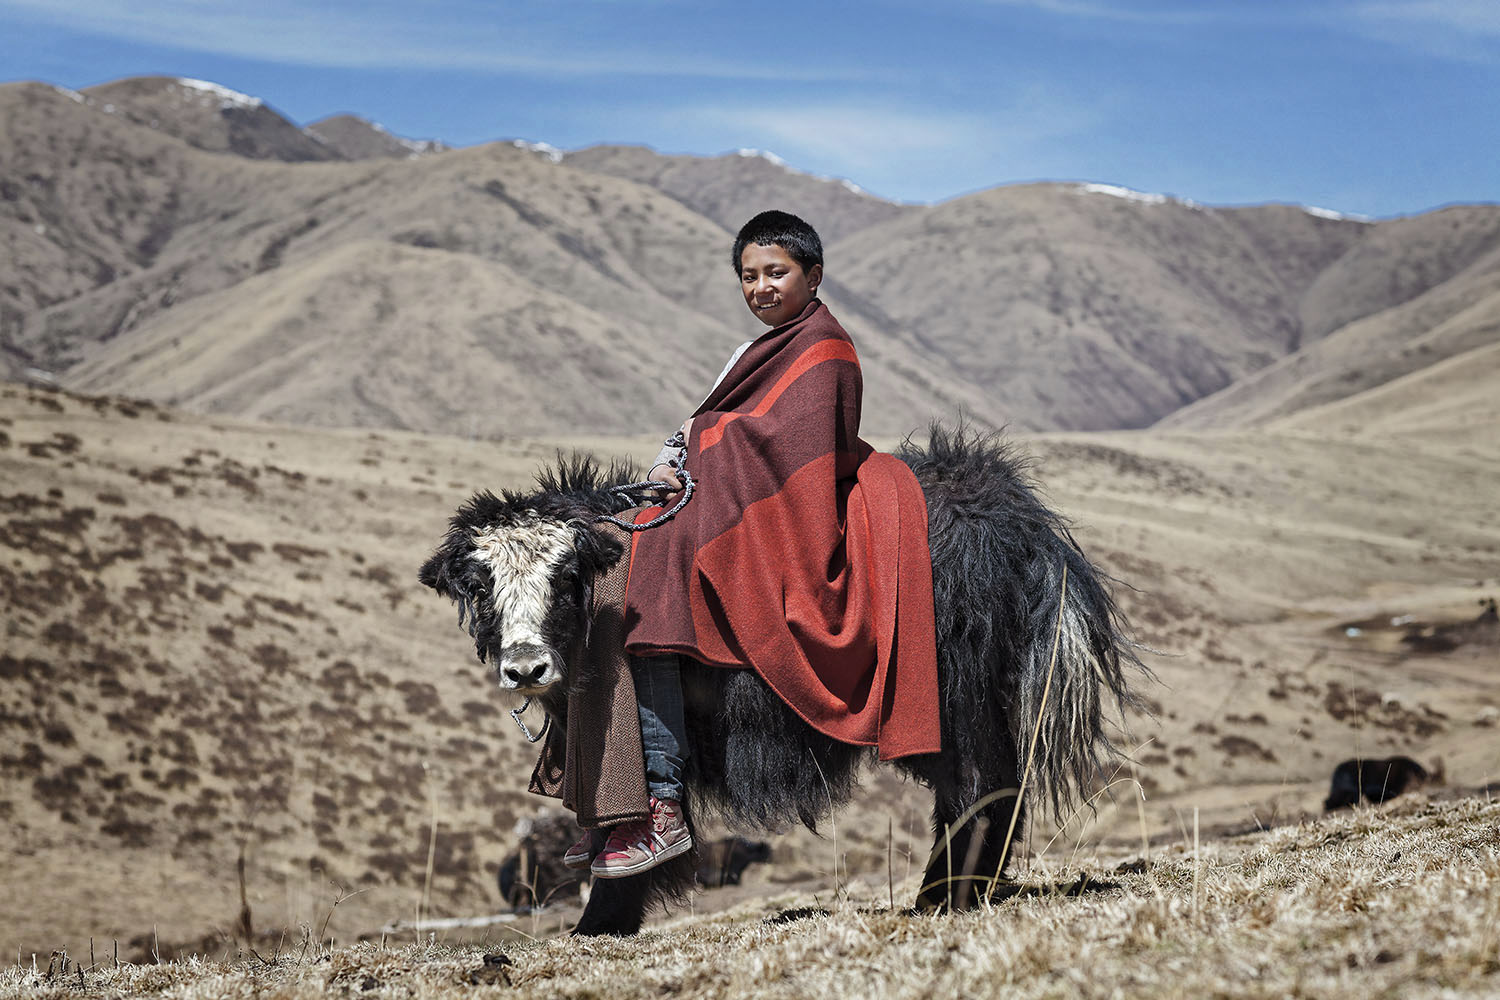 Boy and young yak, Norlha Textiles, Amdo, Tibet/China